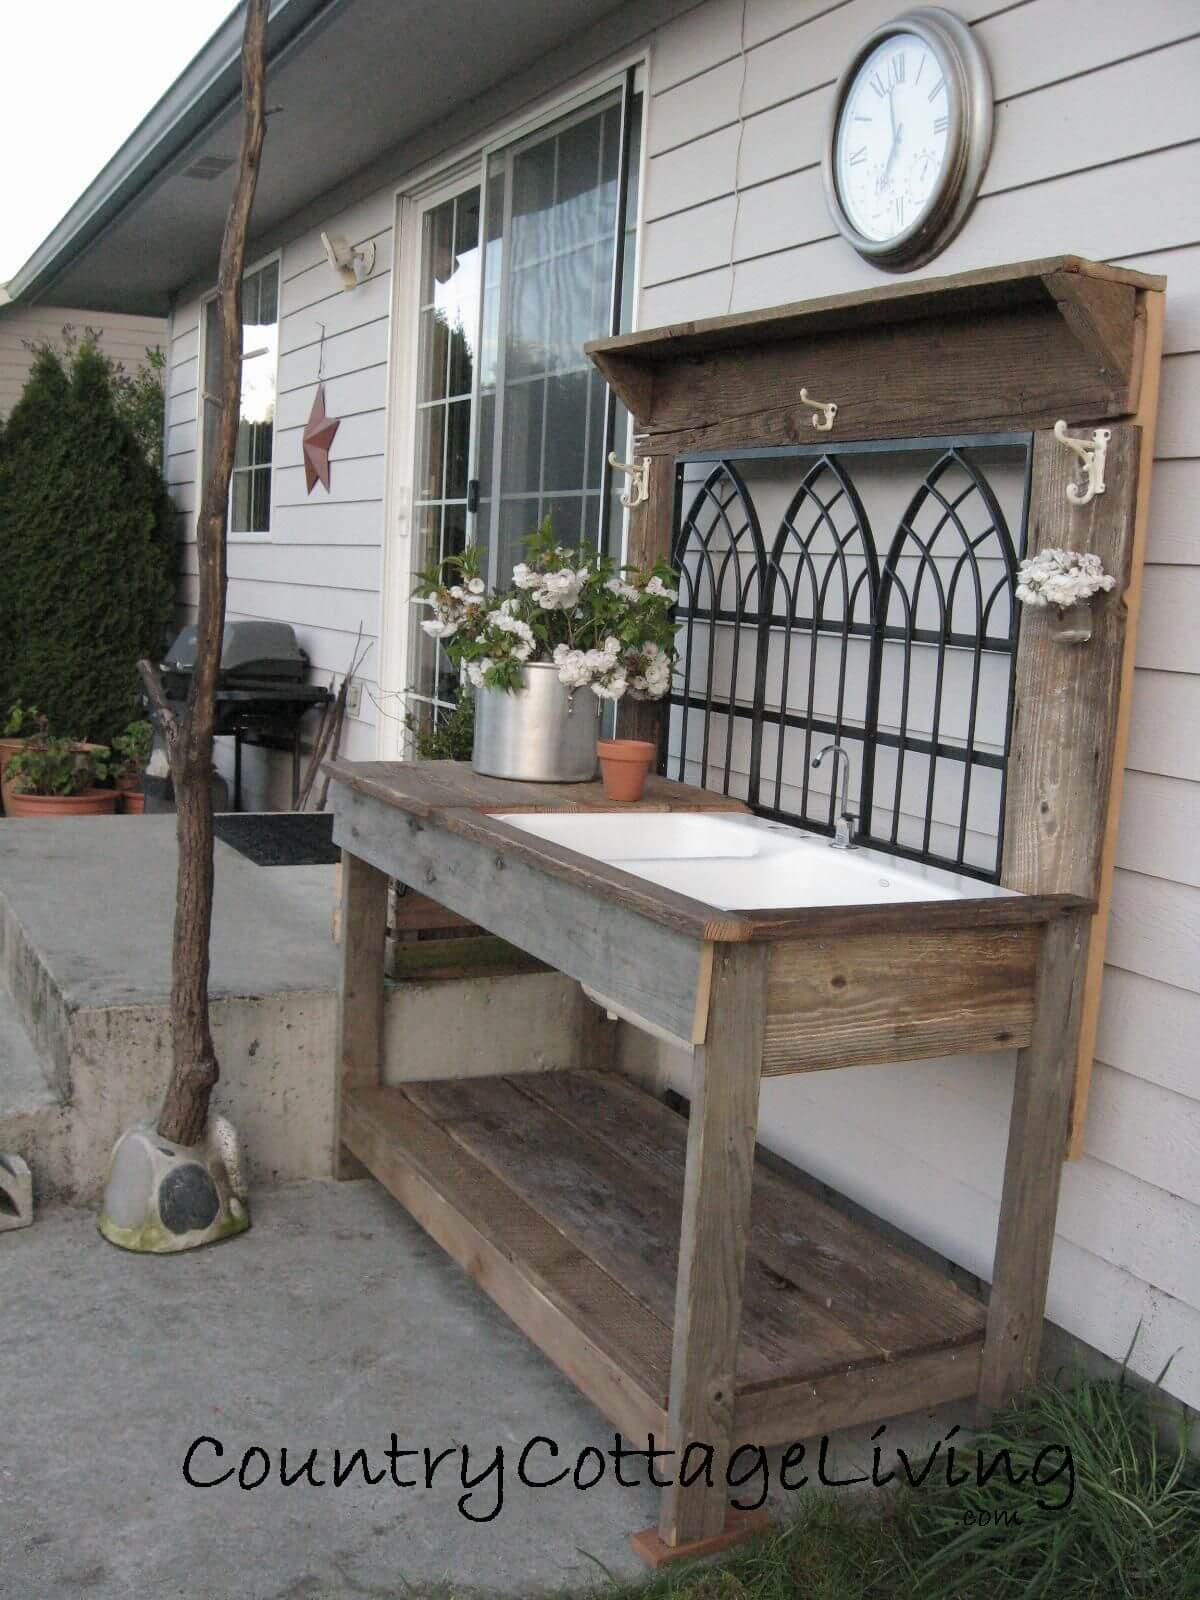 Architectural Salvage Potting Bench Idea